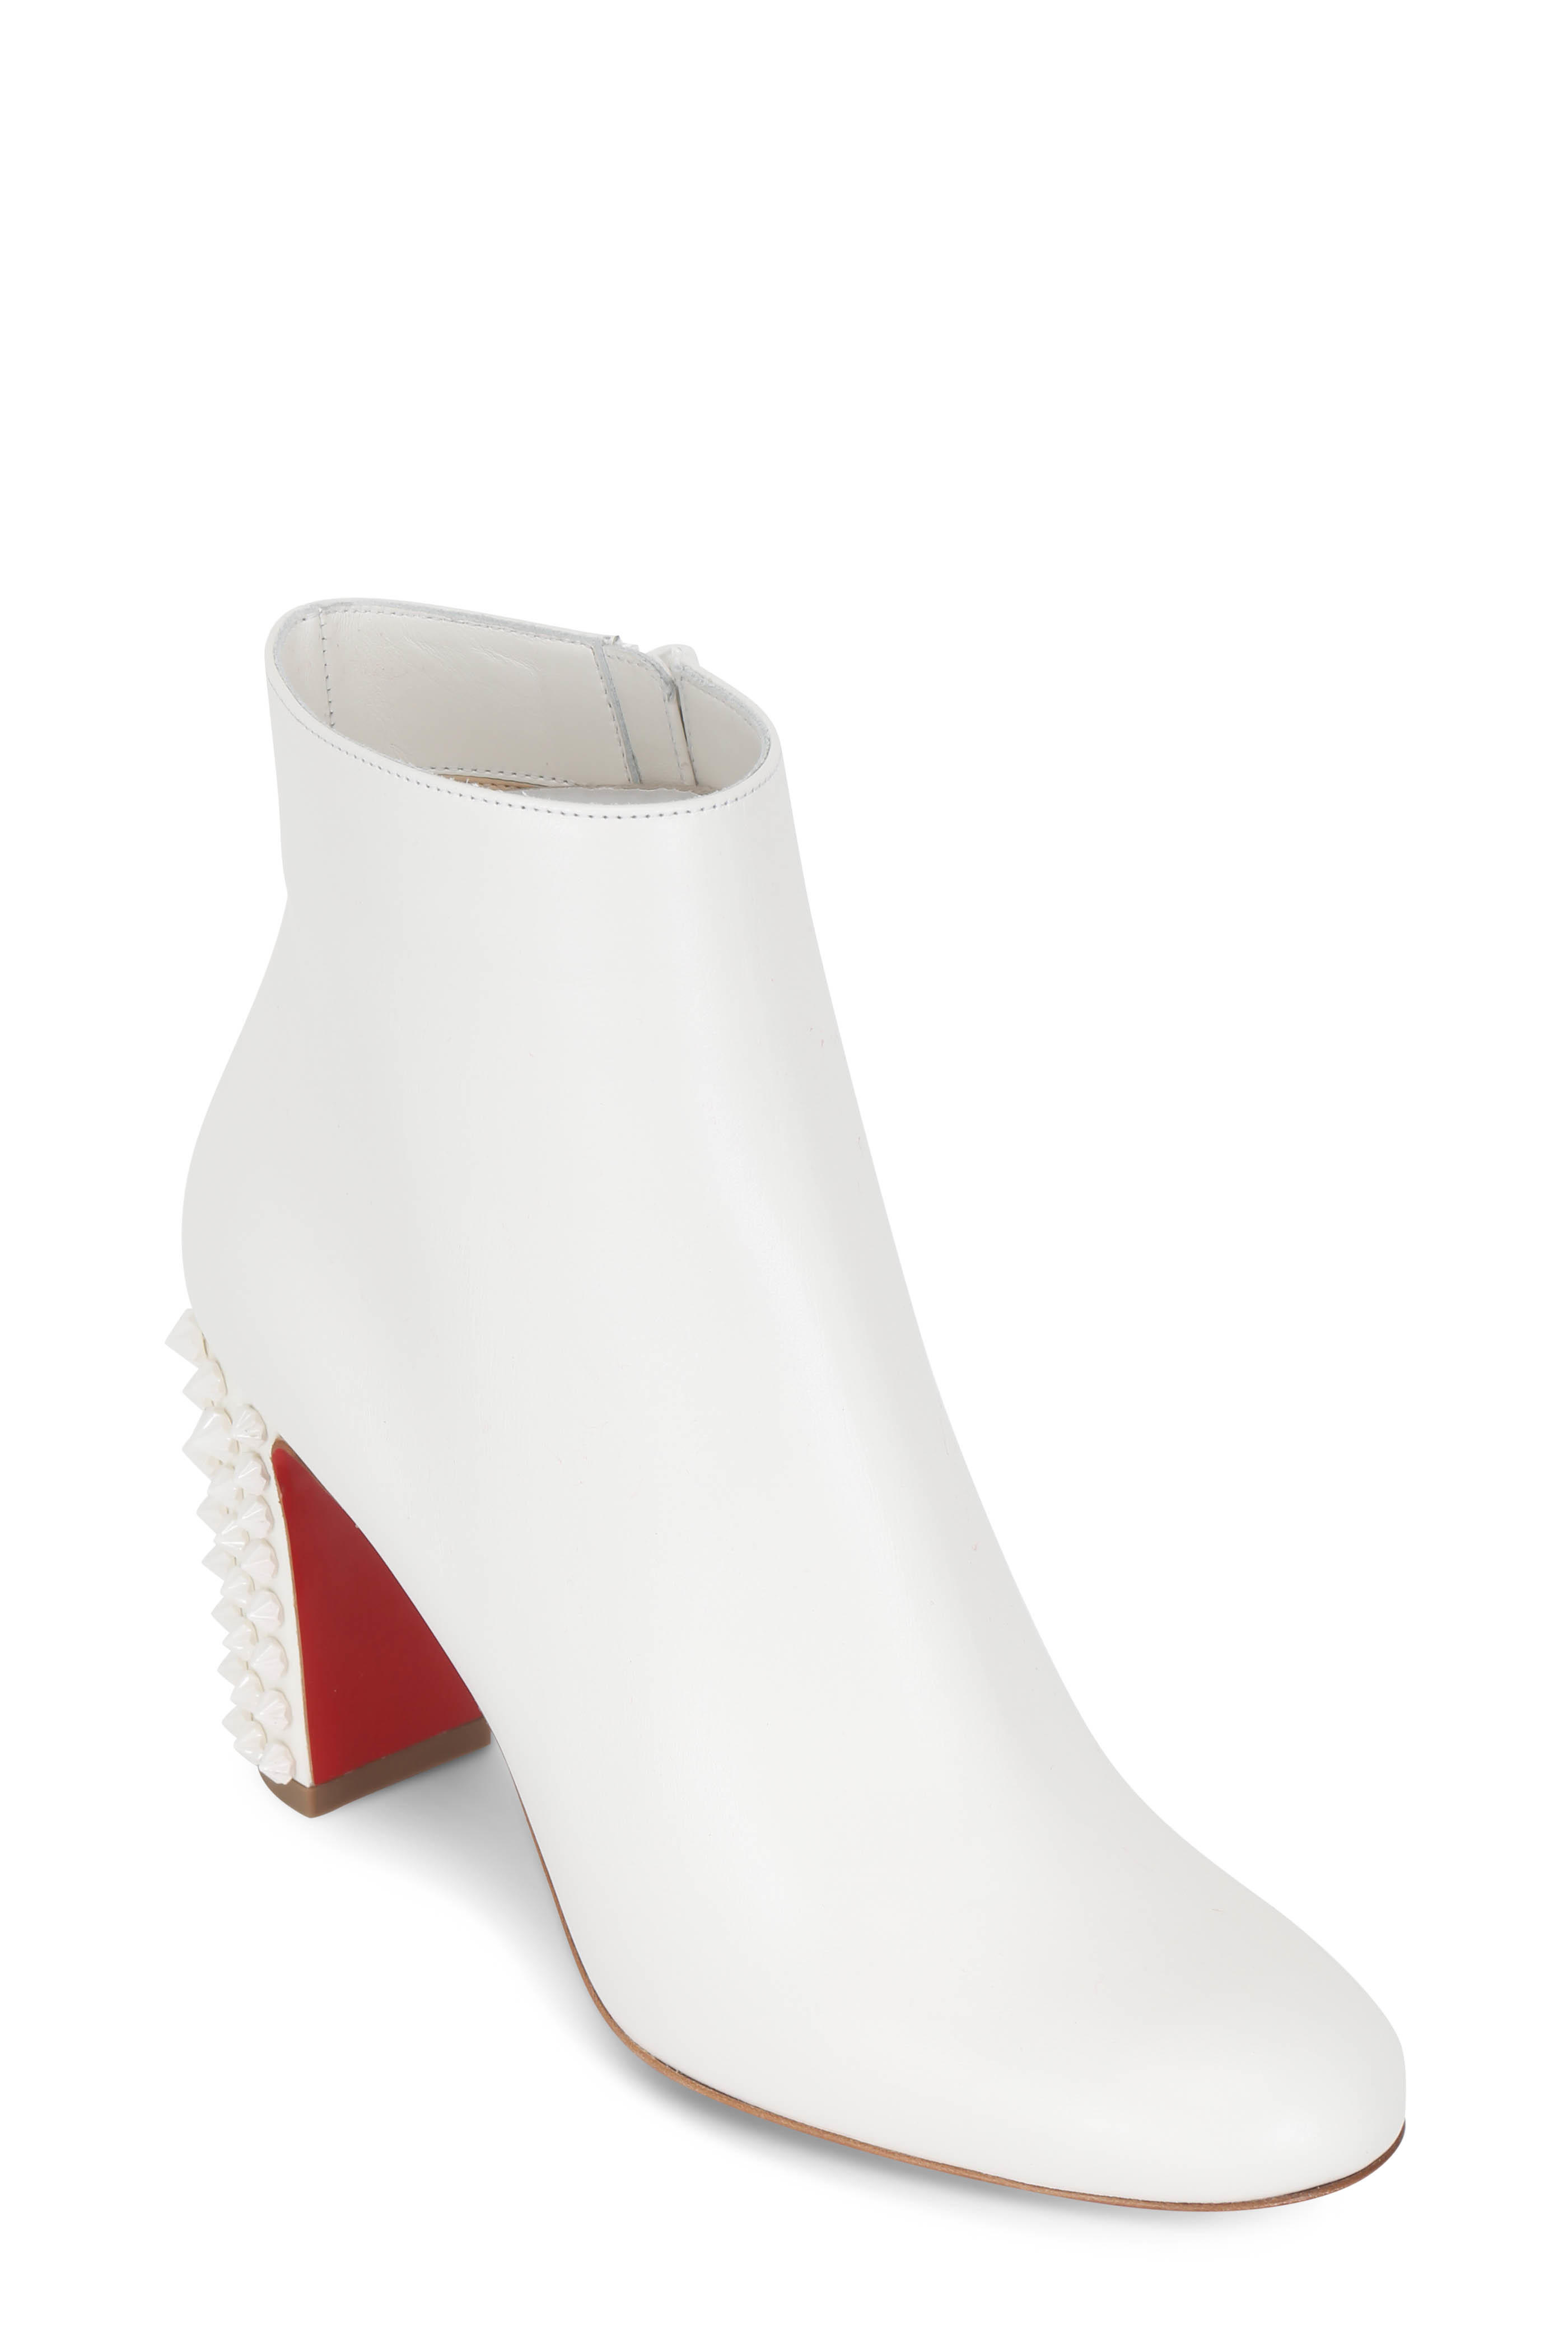 68b969a8ec8 Christian Louboutin - Suzi Folk White Leather Studded Heel Bootie ...